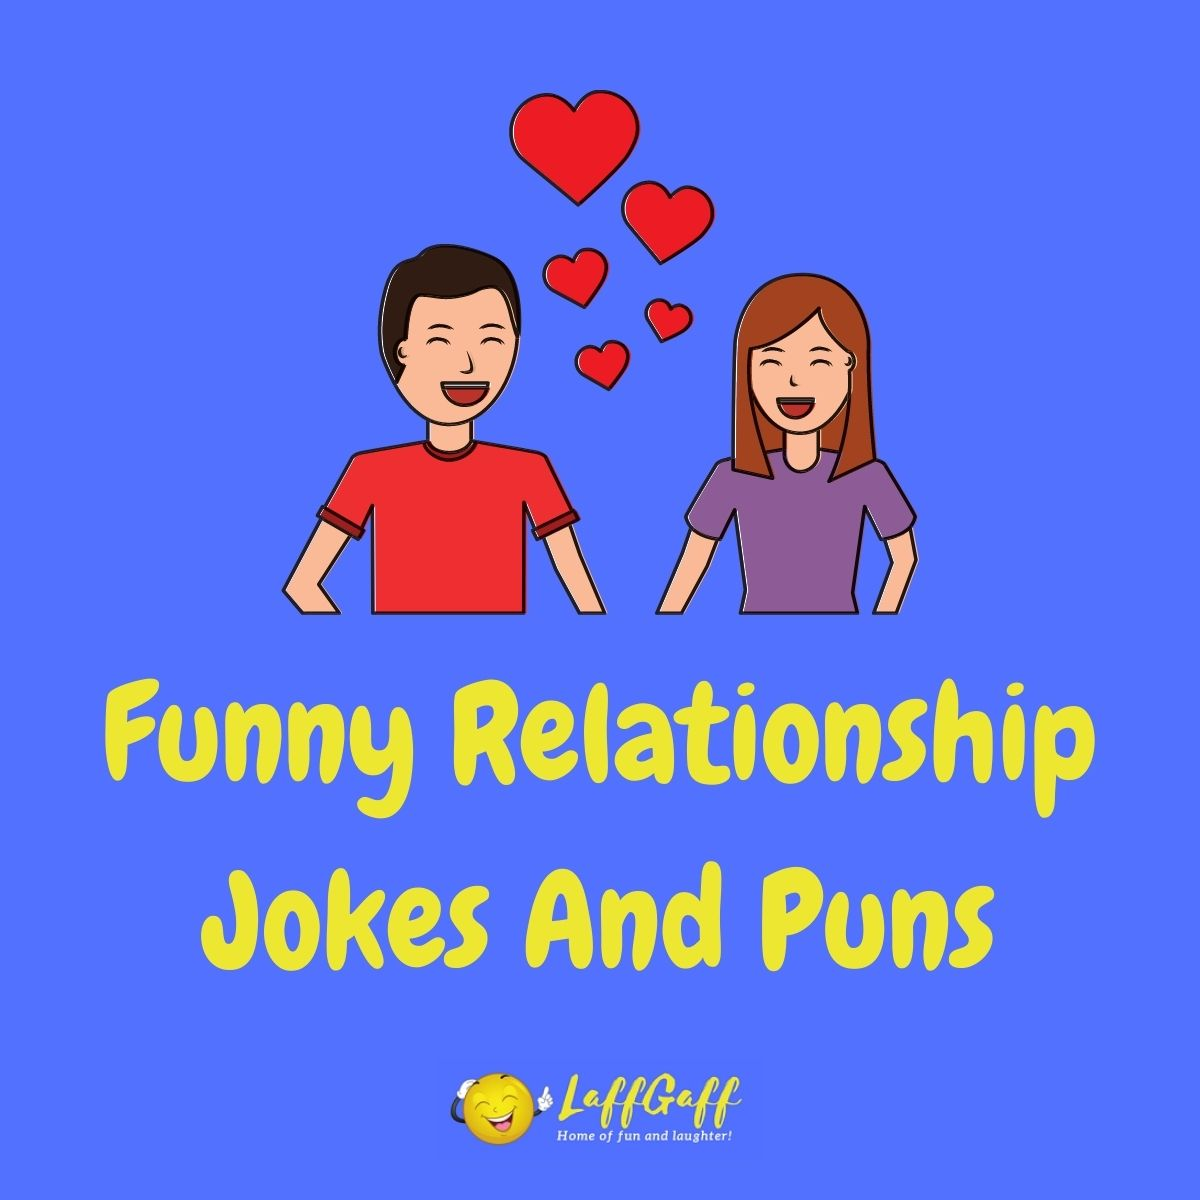 Featured image for a page of funny relationship jokes and puns.